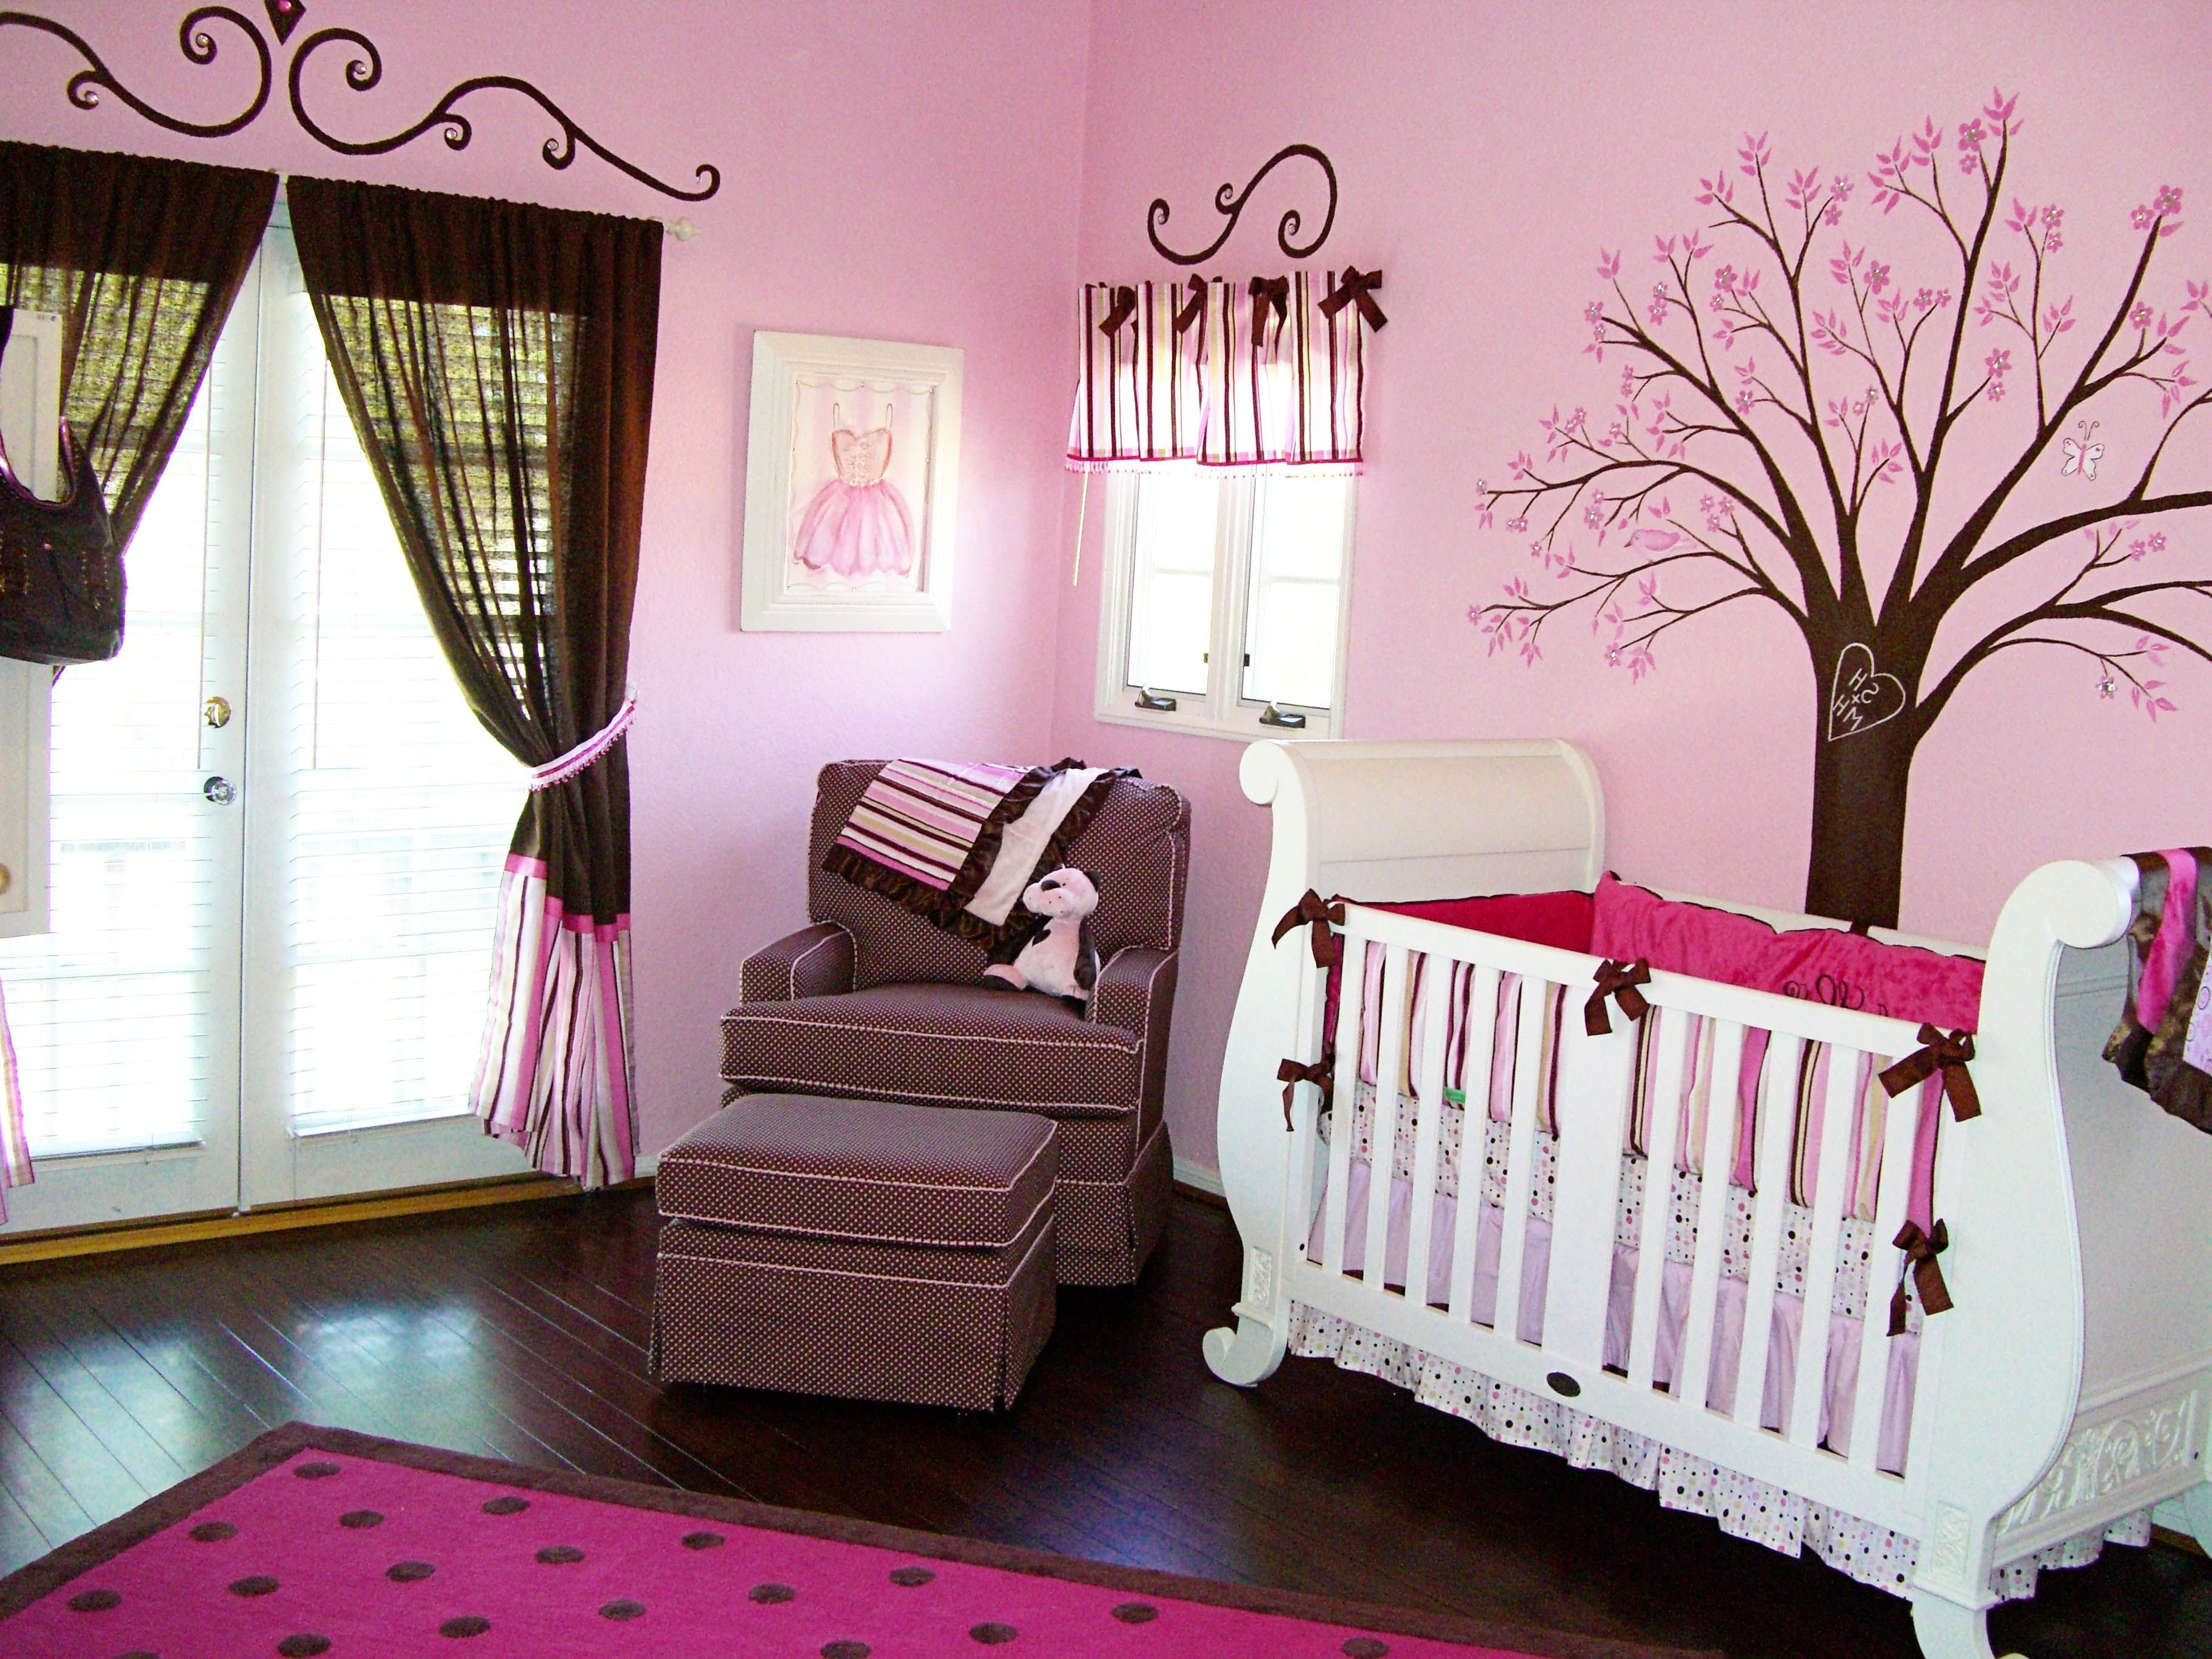 10 Cute Baby Room Ideas For A Girl interior beautiful theme girl baby nursery ideas wooden component 2